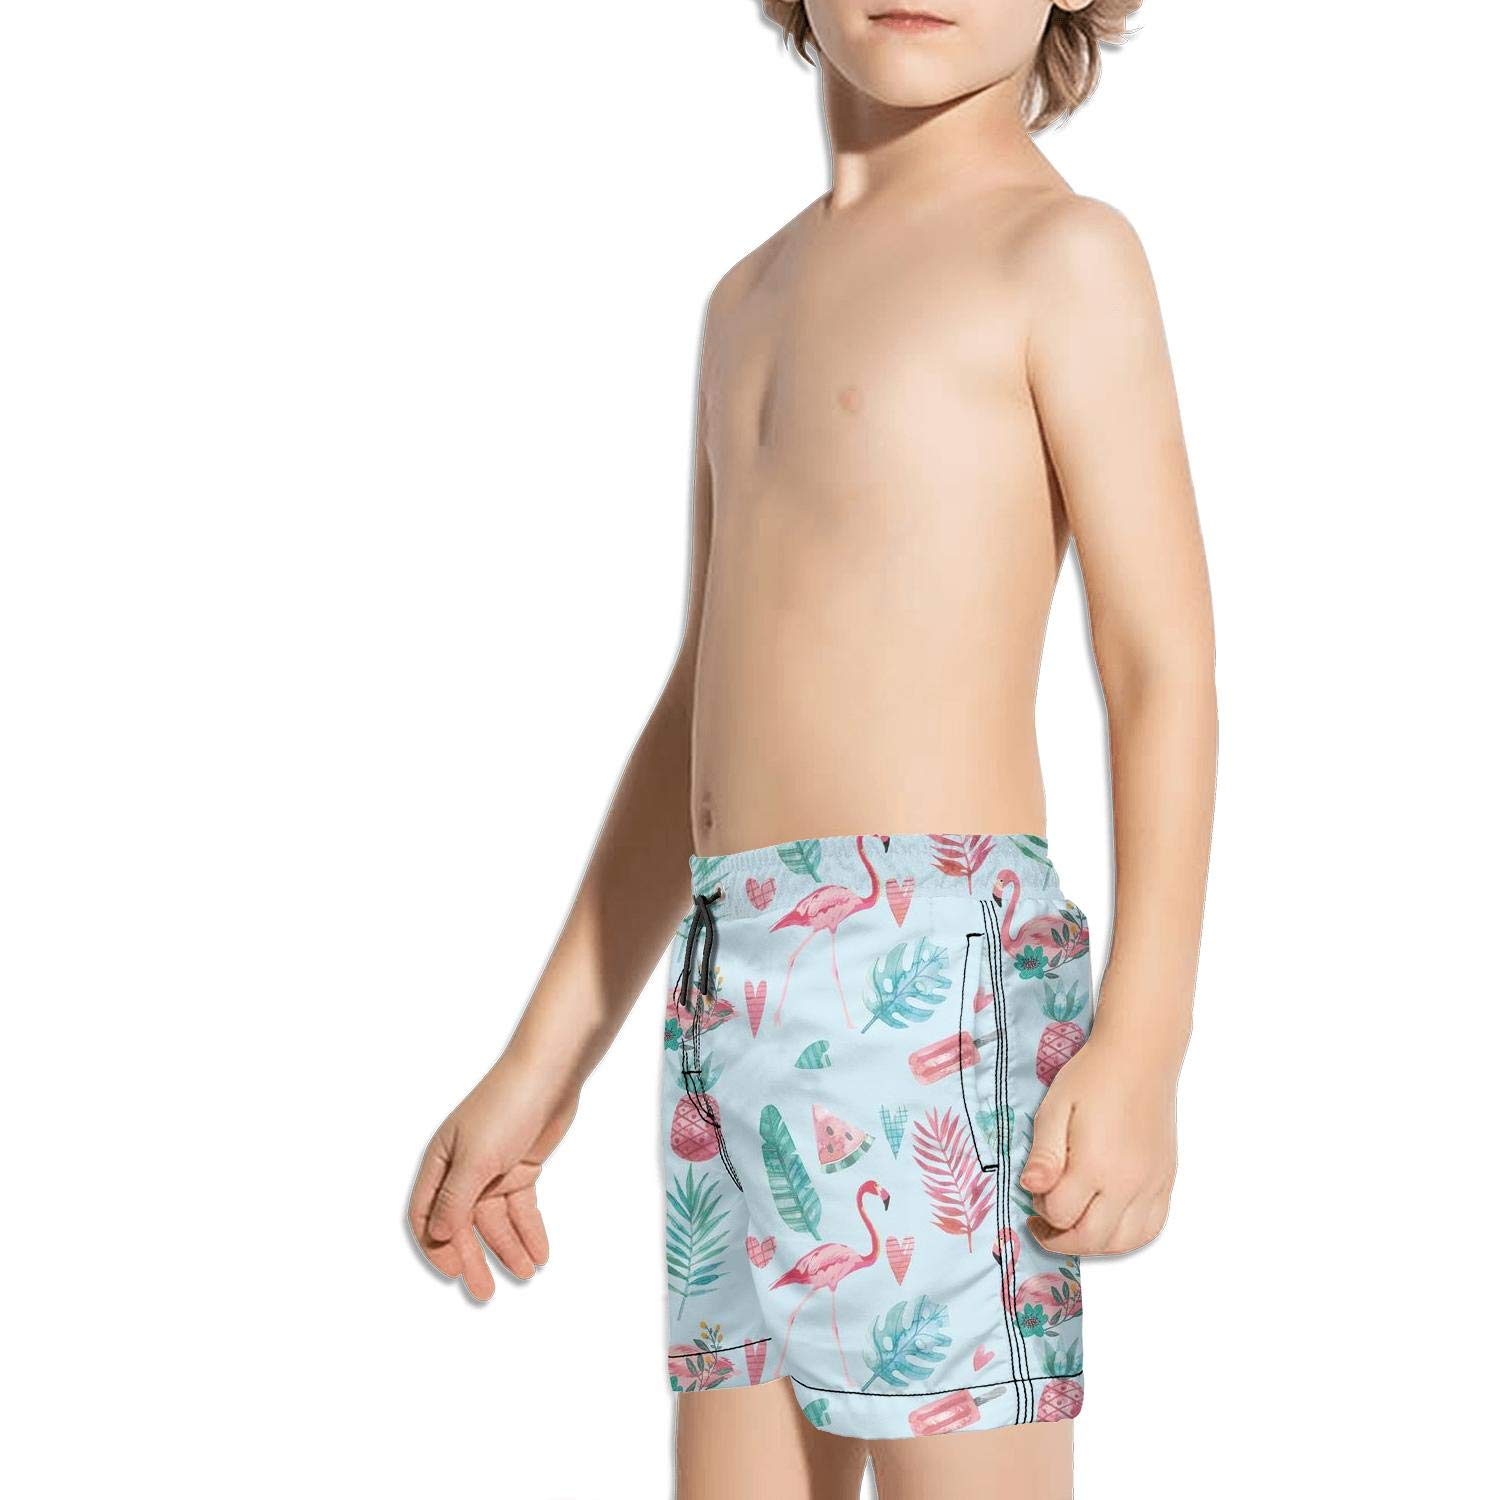 Etstk Pink-Flamingo Kids Comfortable Swim Trunks for Men